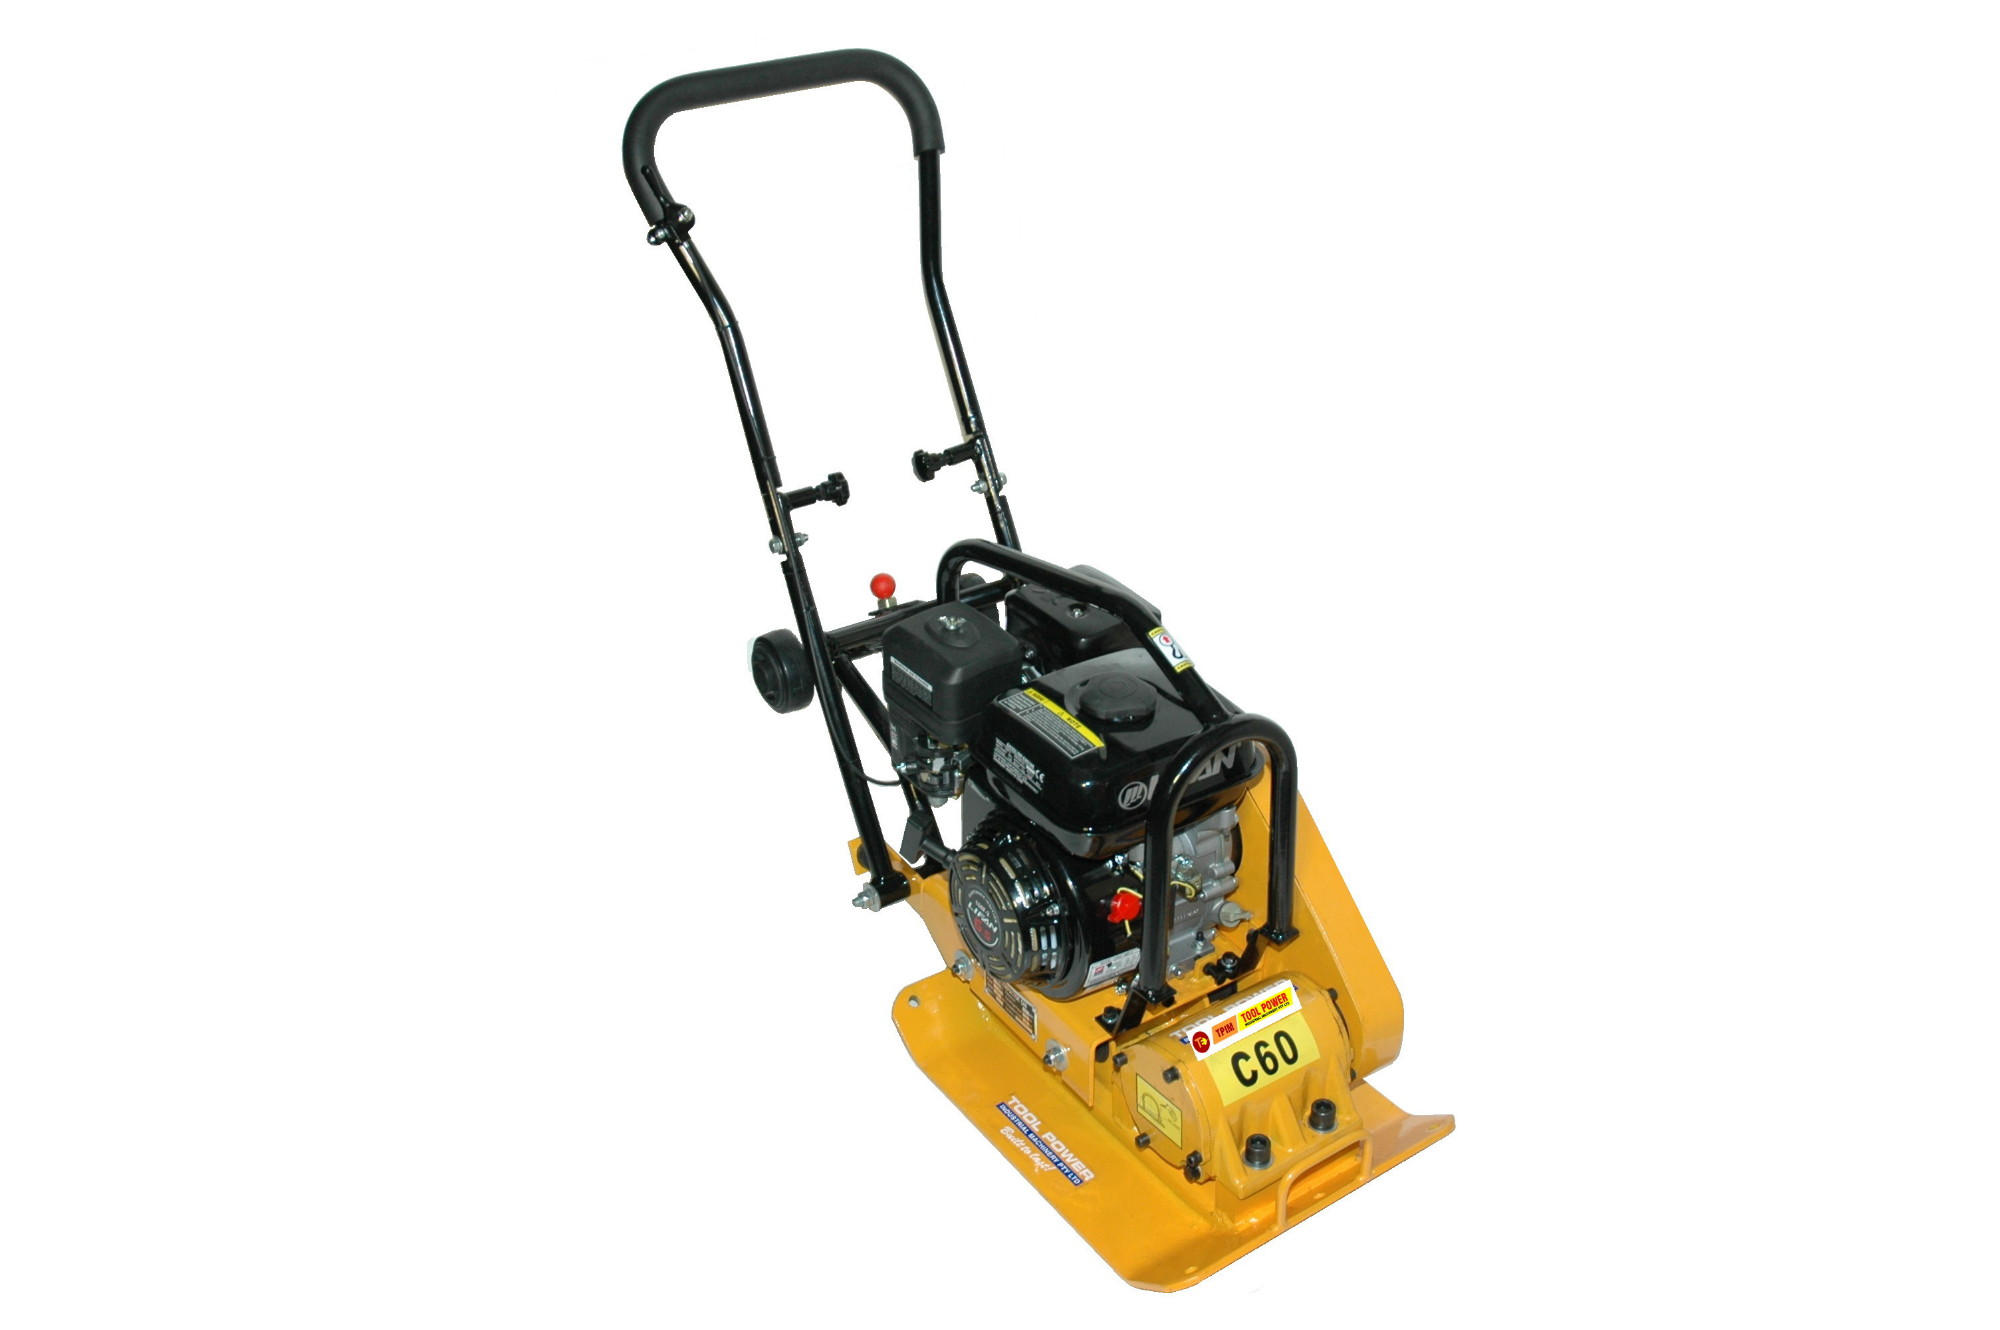 Compactor TOOL POWER 6.5hp, Folding Handles, trolley++-1342